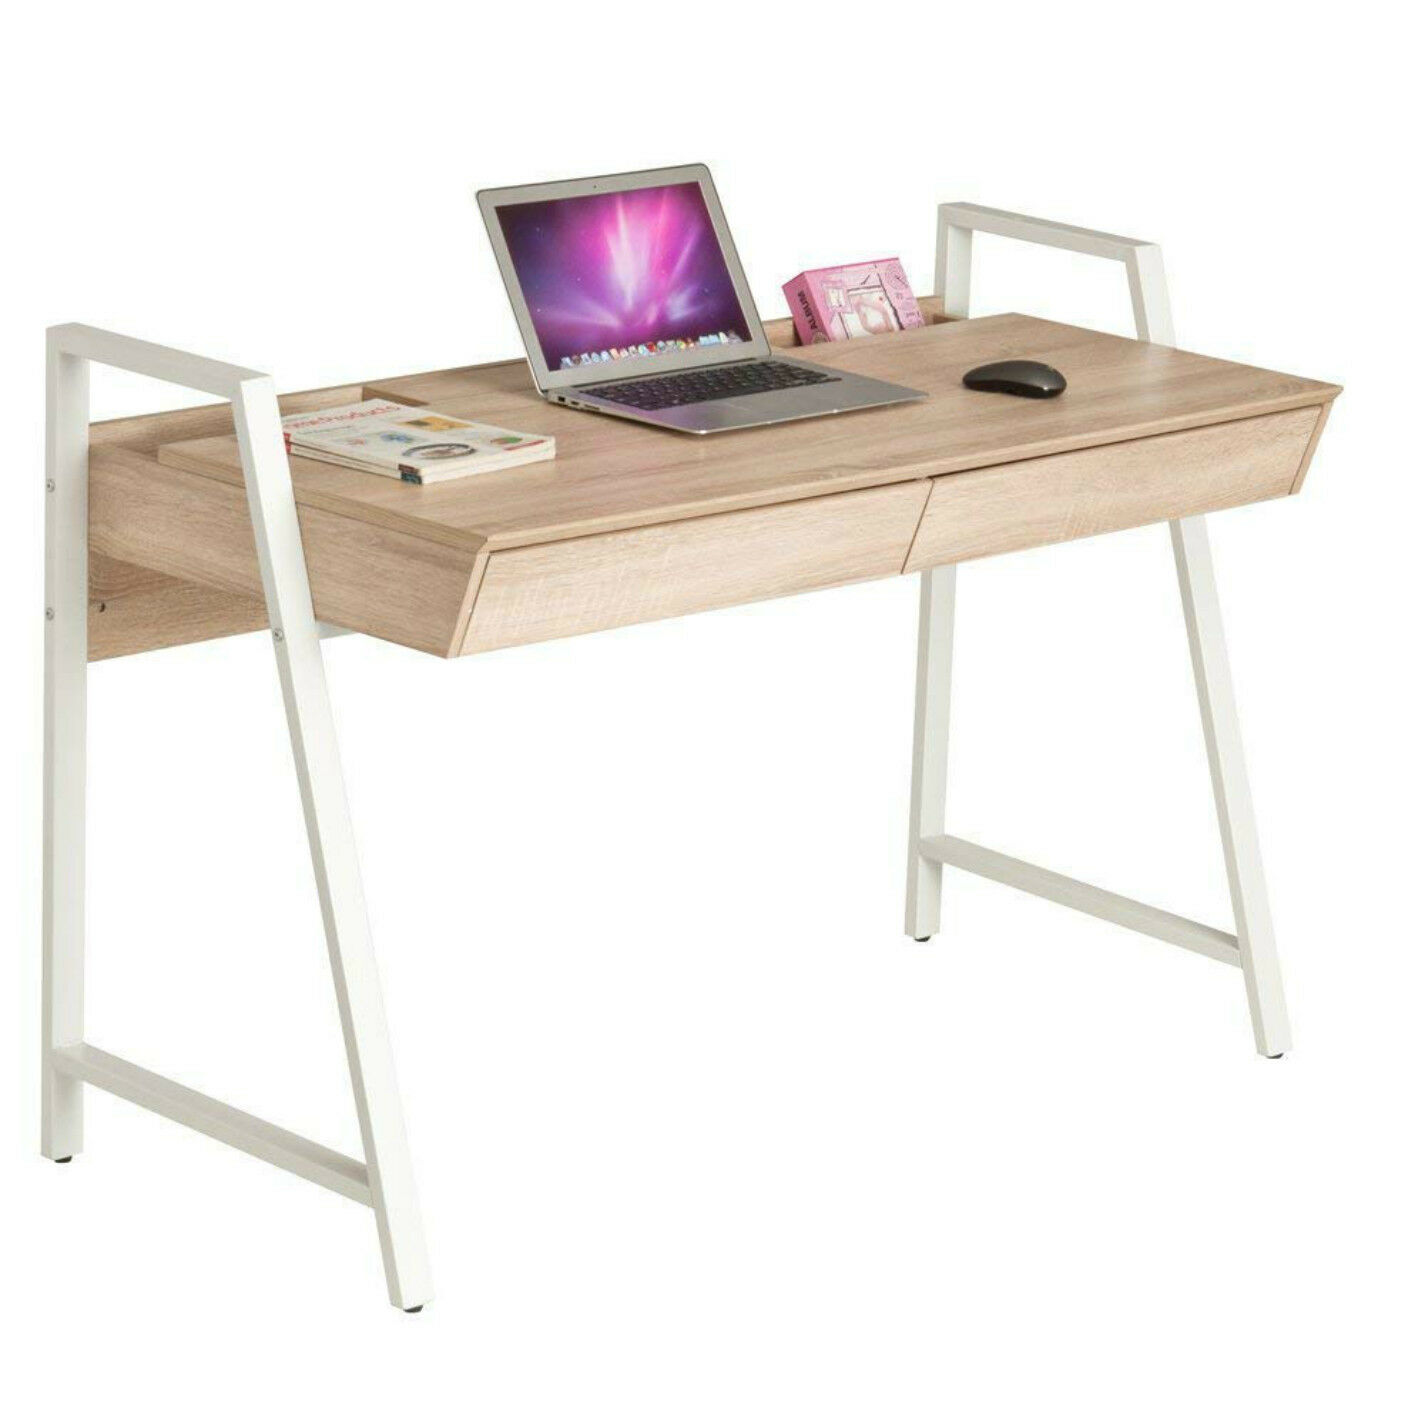 50 Computer Laptop Desk With Drawers Large Home Amp 0ffice